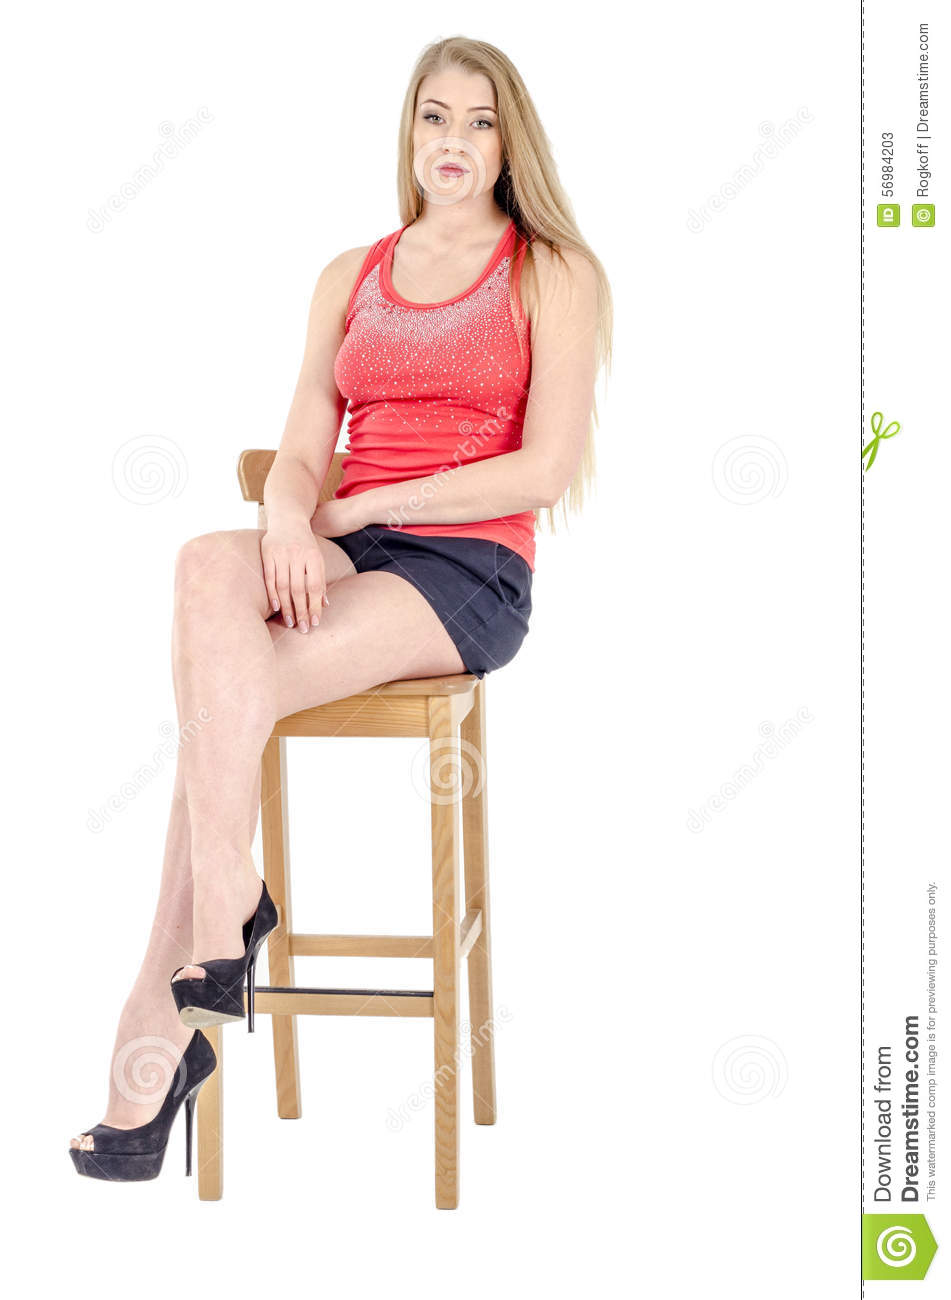 Fantastic Pretty Woman Sitting Outside In A Skirt And Red Shirt Looking Off Into